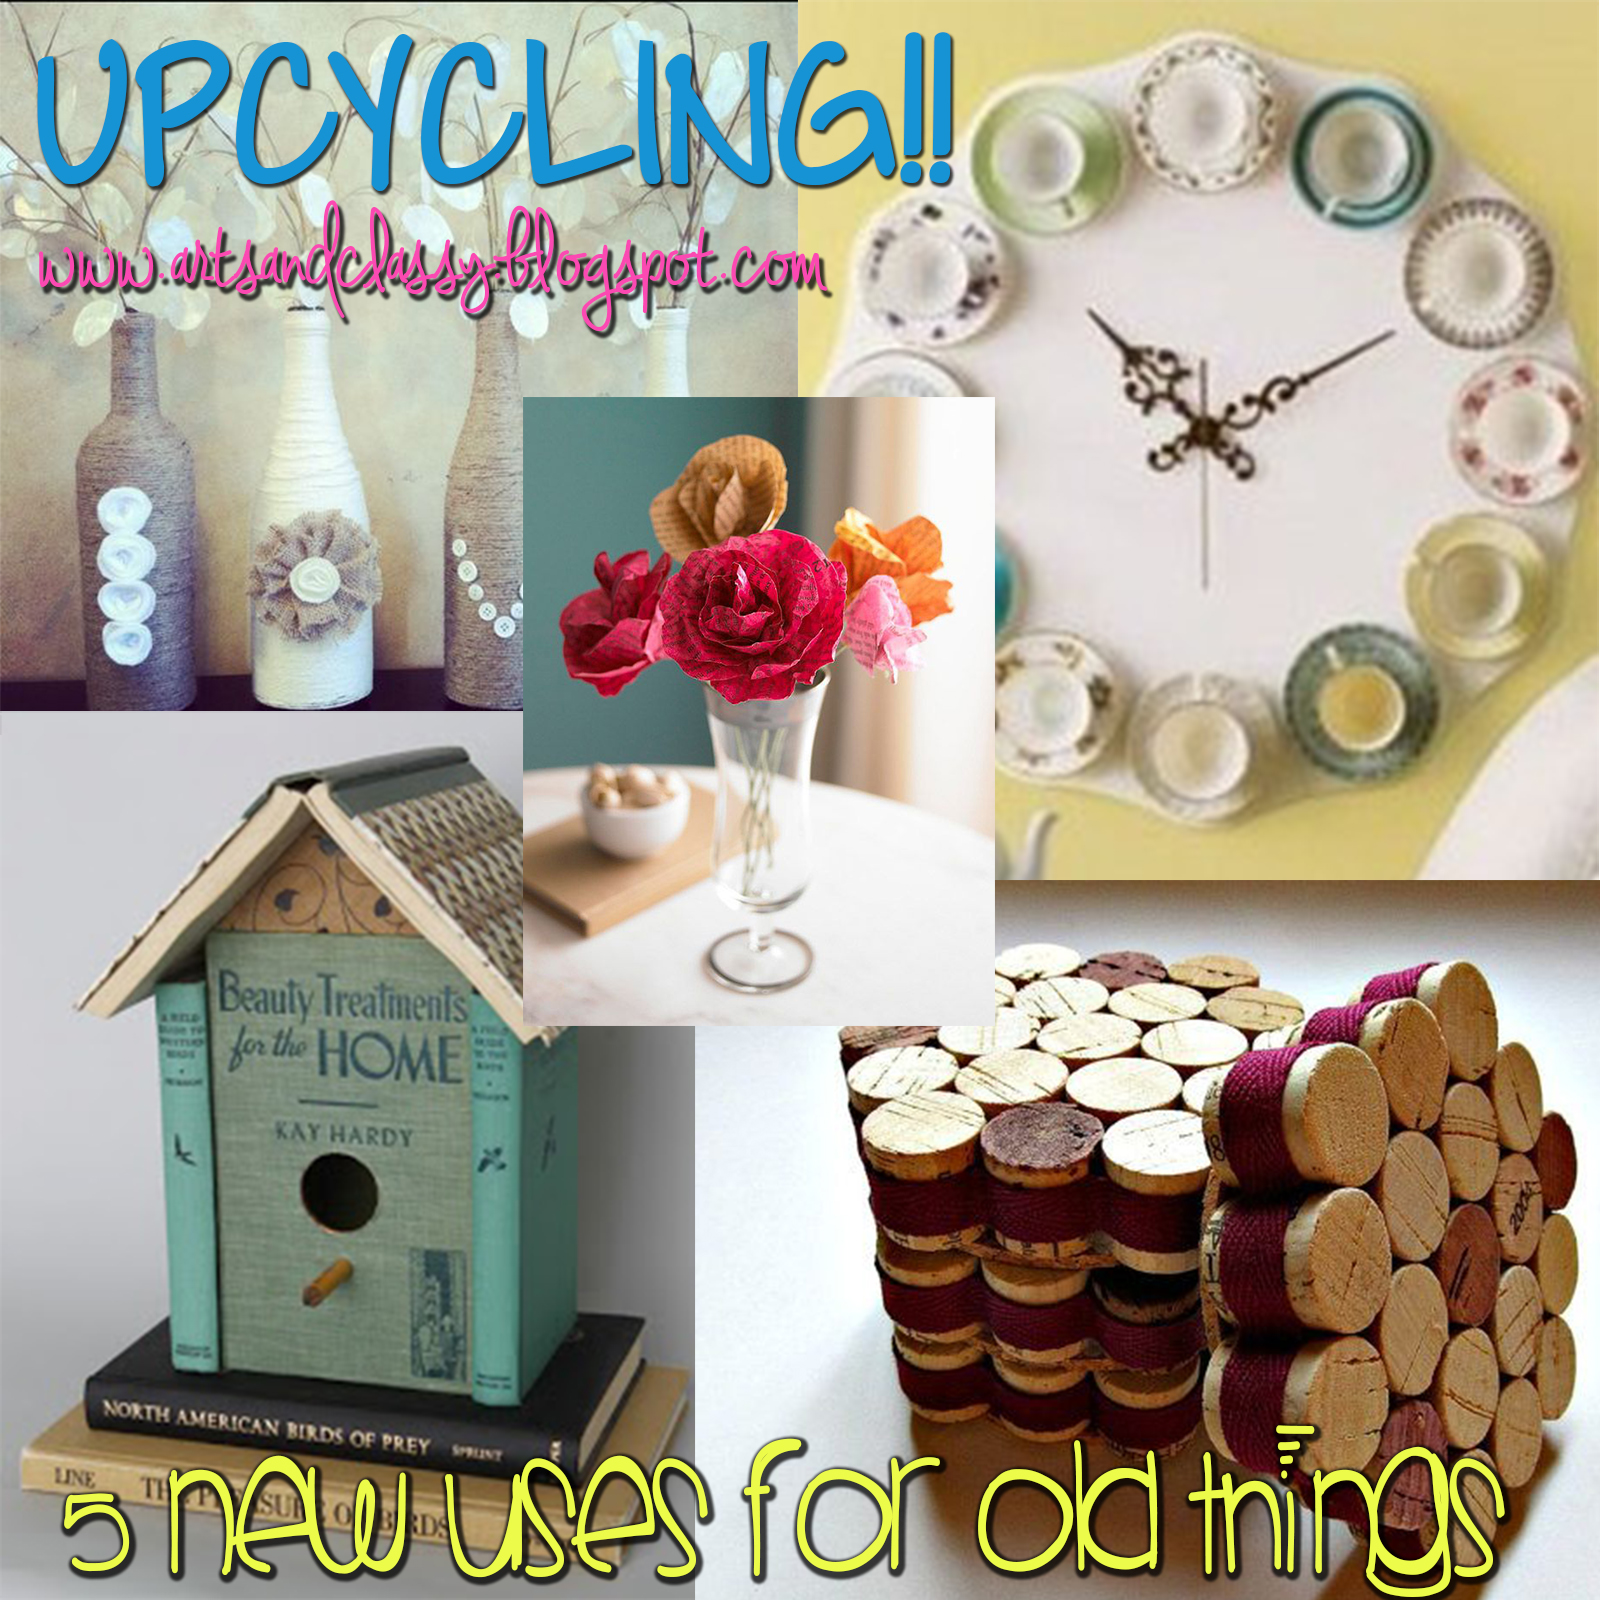 upcycling 5 new uses for old things in home decor